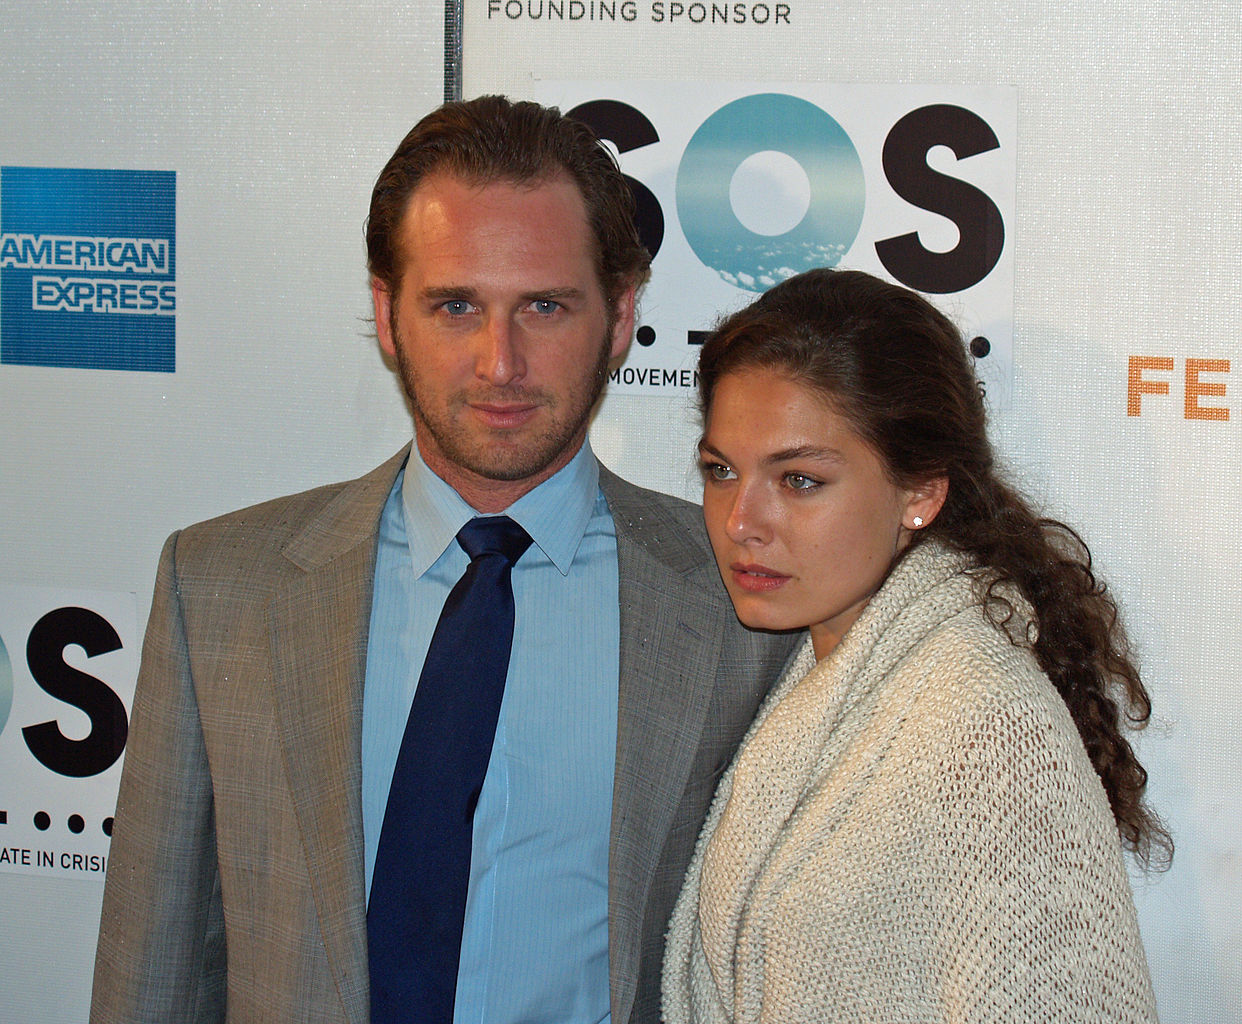 Former boyfriend and girlfriend: Josh Lucas and Alexa Davalos